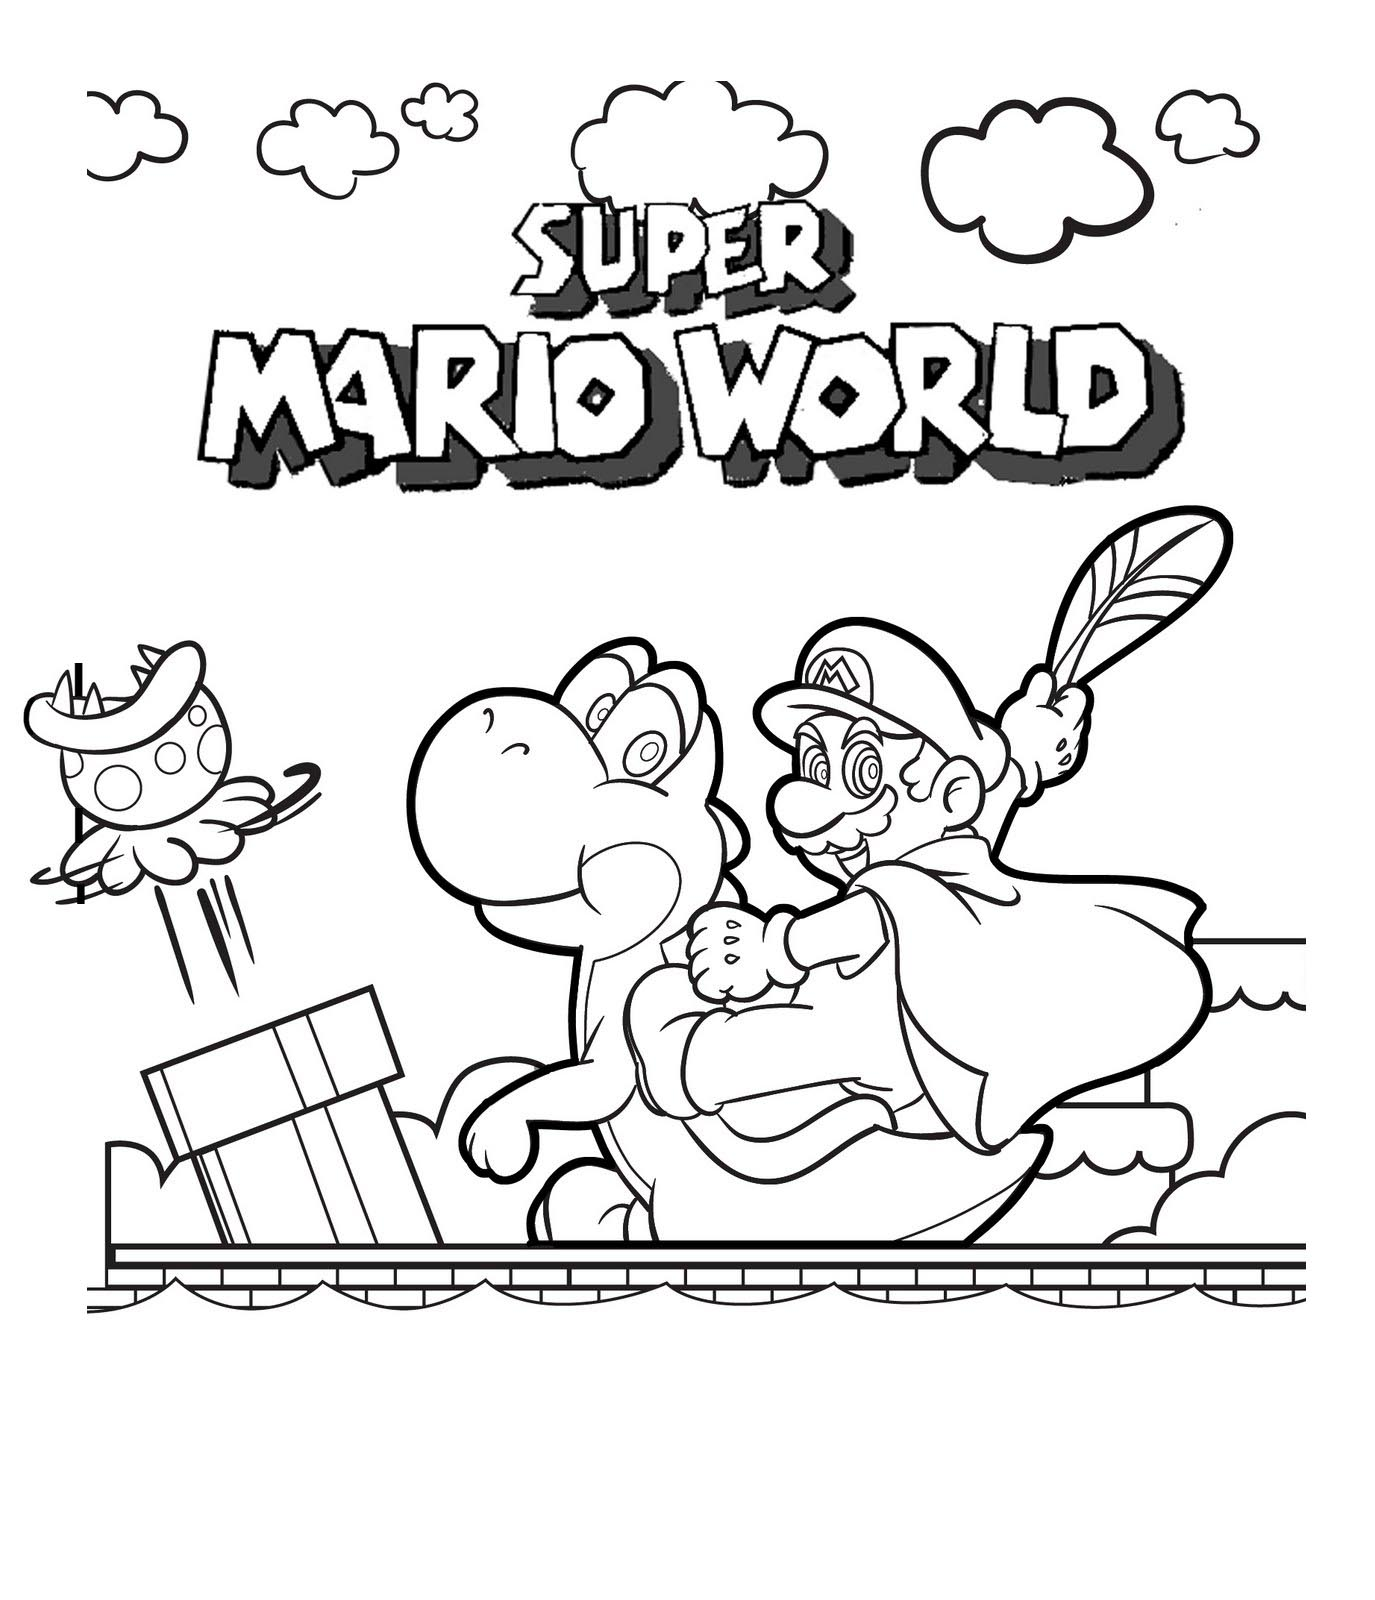 super mario bros coloring pages - photo#31